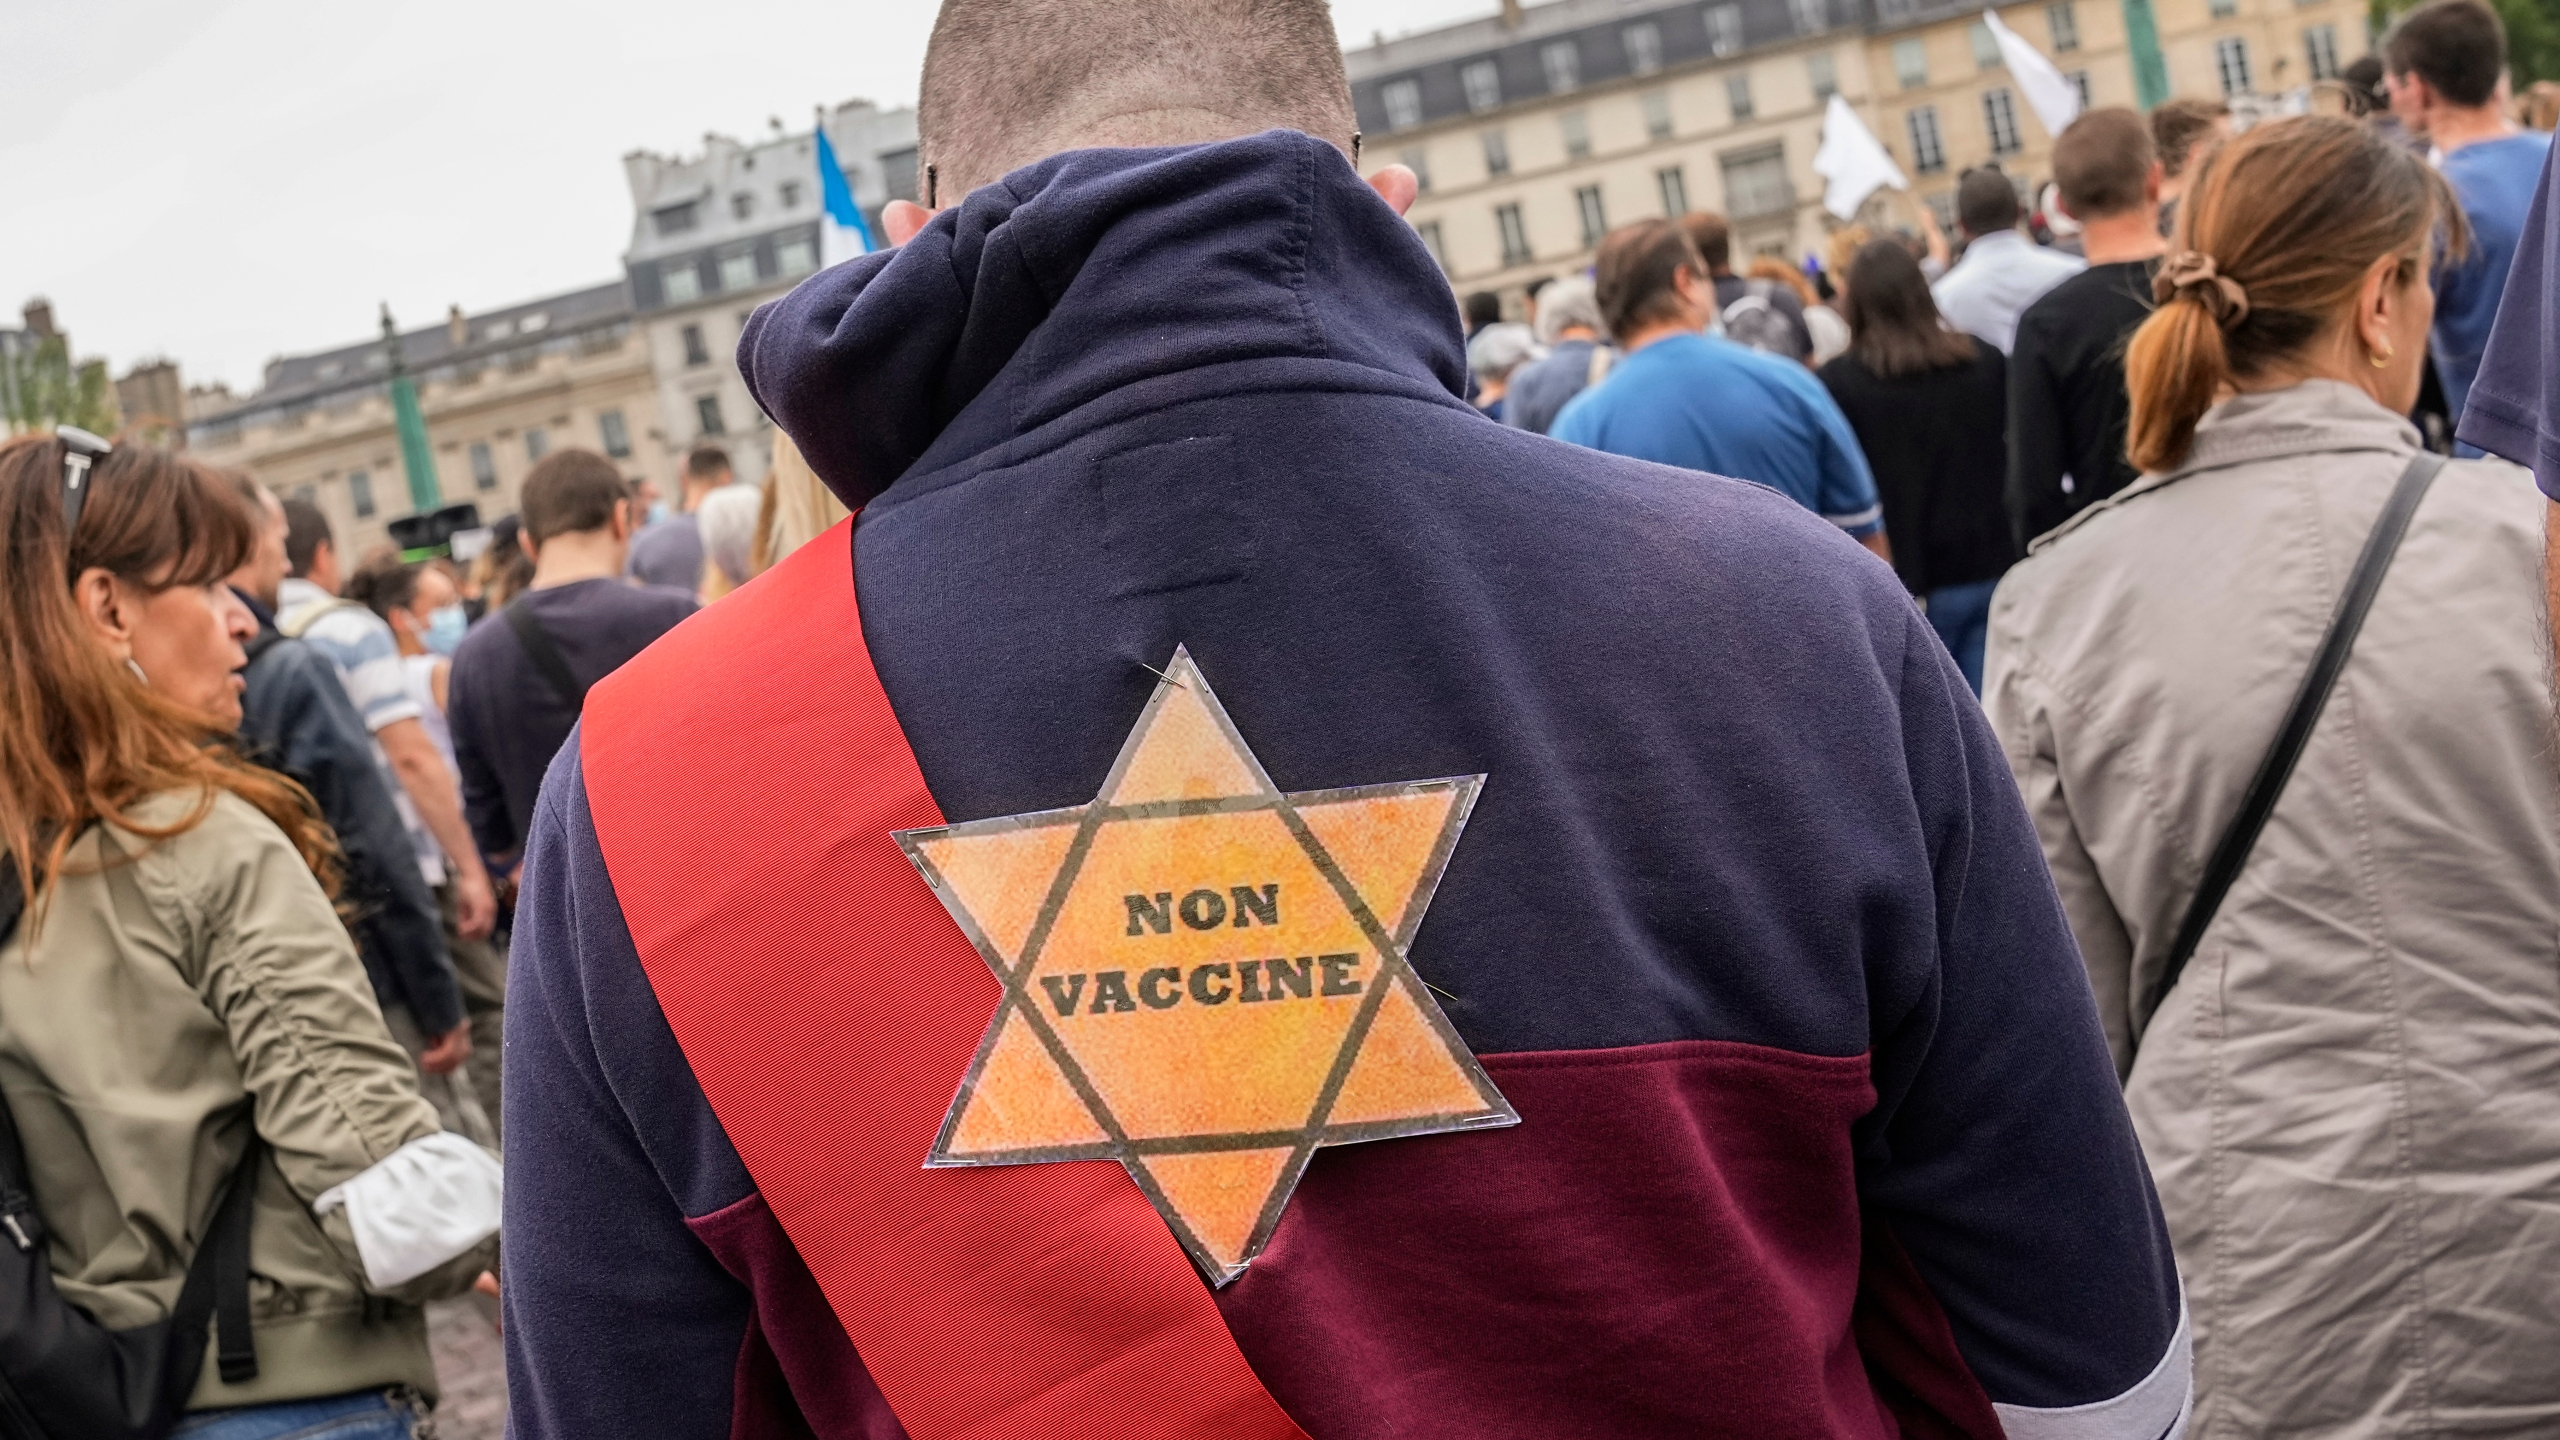 A star that reads, not vaccinated is attached on the back of an Anti-vaccine protesters during a rally in Paris, Saturday, July 17, 2021. A Holocaust survivor, French officials and anti-racism groups are denouncing anti-vaccination protesters who are comparing themselves to Jews persecuted by the Nazis. Some mostly far-right demonstrators at weekend protests against government vaccine rules wore yellow stars, like those Jews were forced to wear under Nazi rule in World War II. Other demonstrators carried signs evoking the Auschwitz death camp or South Africa's apartheid regime, claiming the French government is unfairly persecuting them as it battles the pandemic. (AP Photo/Michel Euler, File)